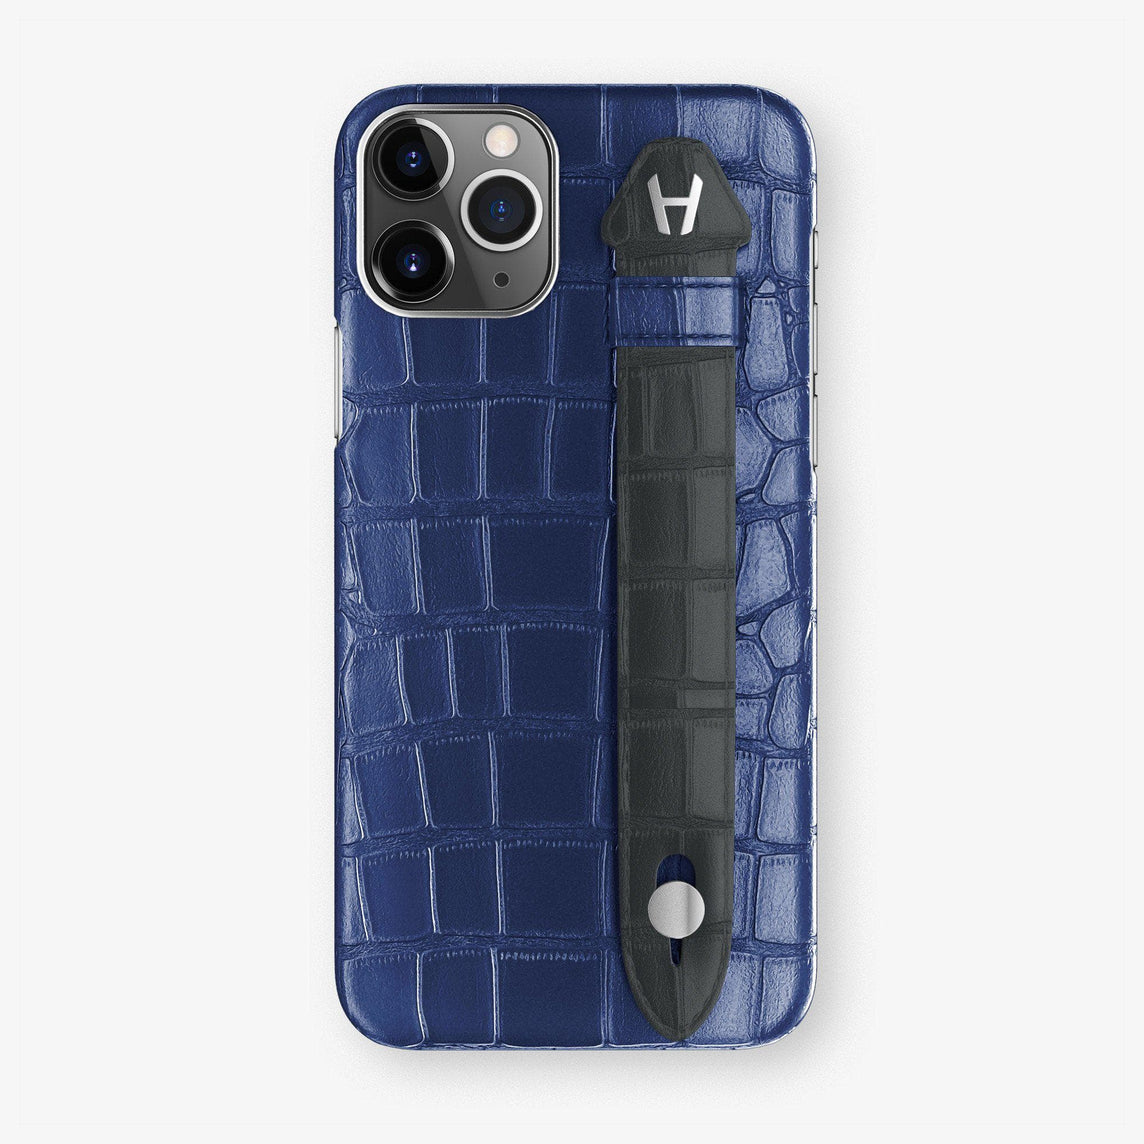 Alligator Finger Case iPhone 11 | Navy Blue/Grey Anthracite - Stainless Steel